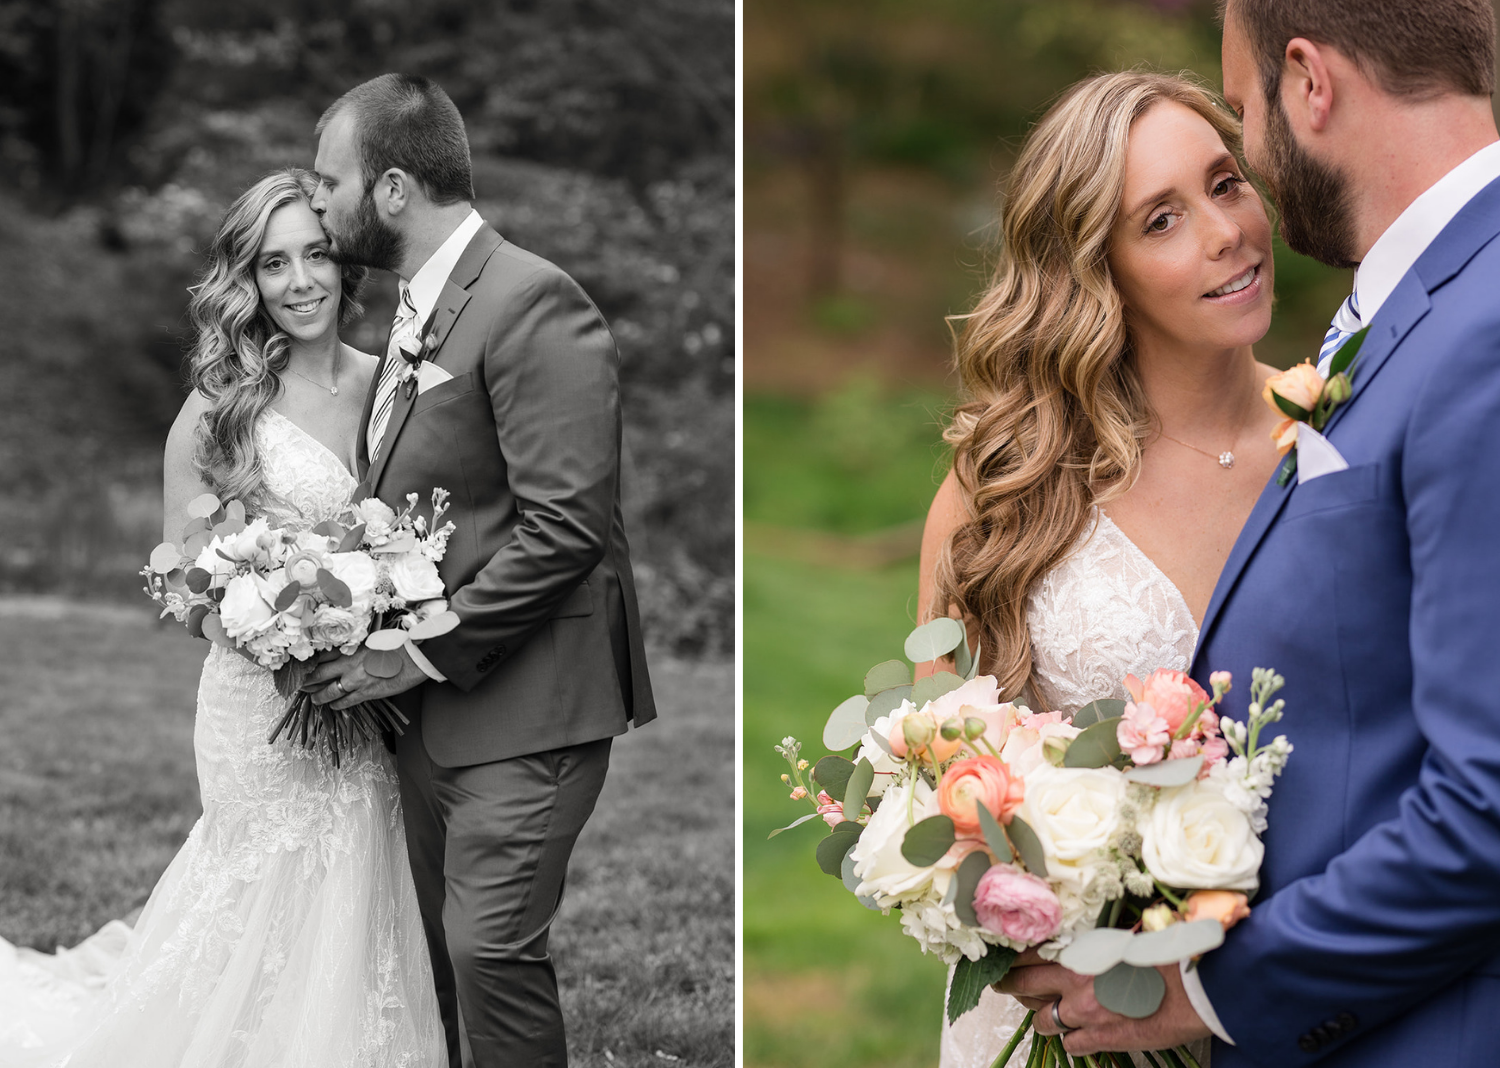 outdoor wedding portraits of the bride and groom